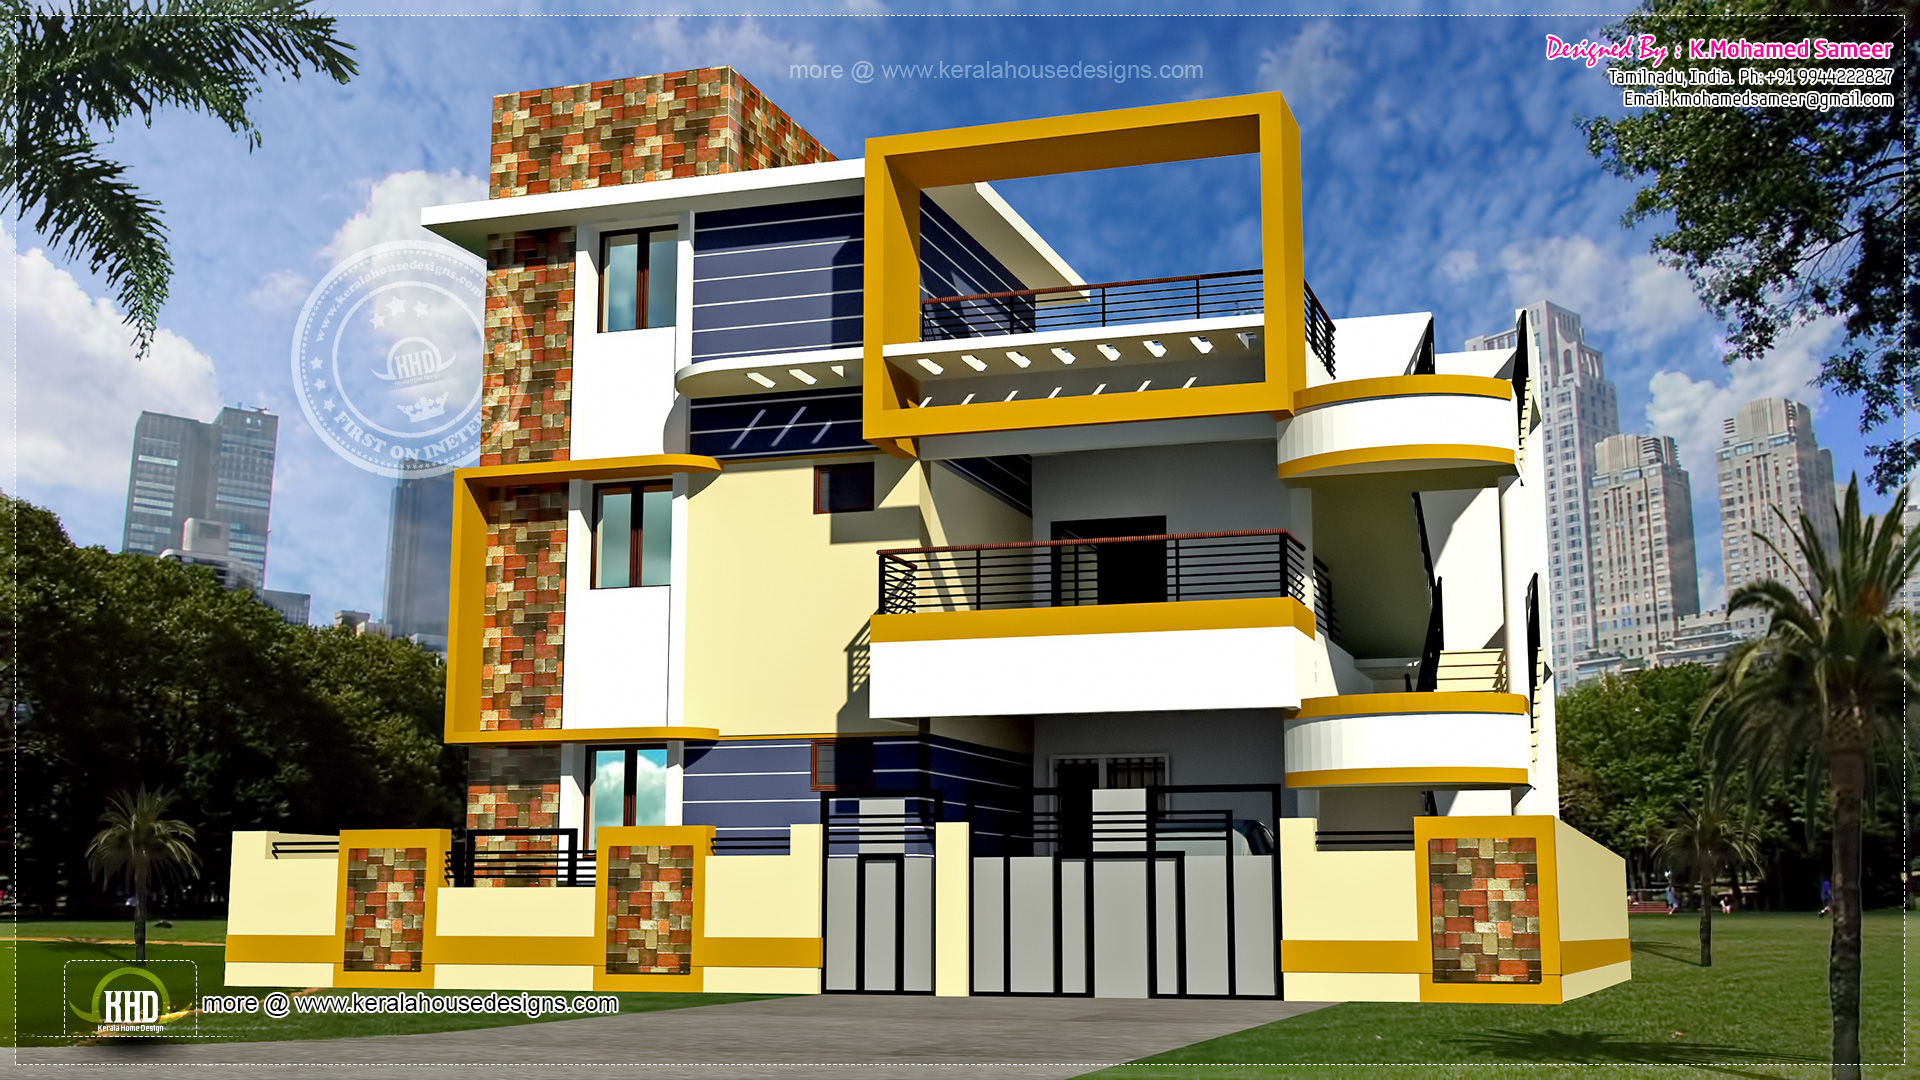 Modern 3 Floor Tamilnadu House Design Kerala Home Design And Floor Plans